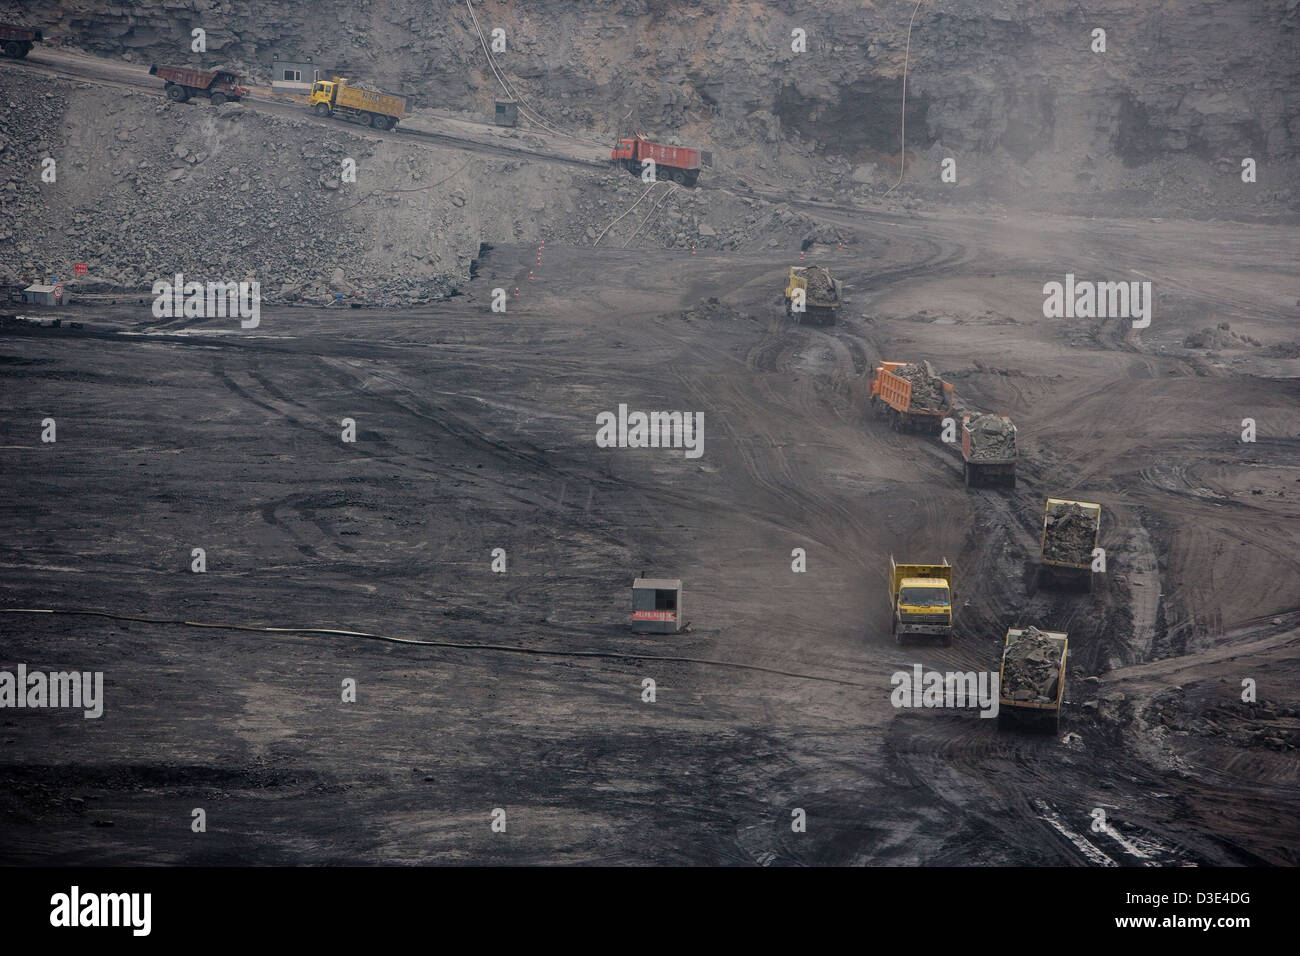 ORDOS, INNER MONGOLIA, CHINA - AUGUST 2007: A procession of 50 ton trucks are loaded with overburden on their way Stock Photo